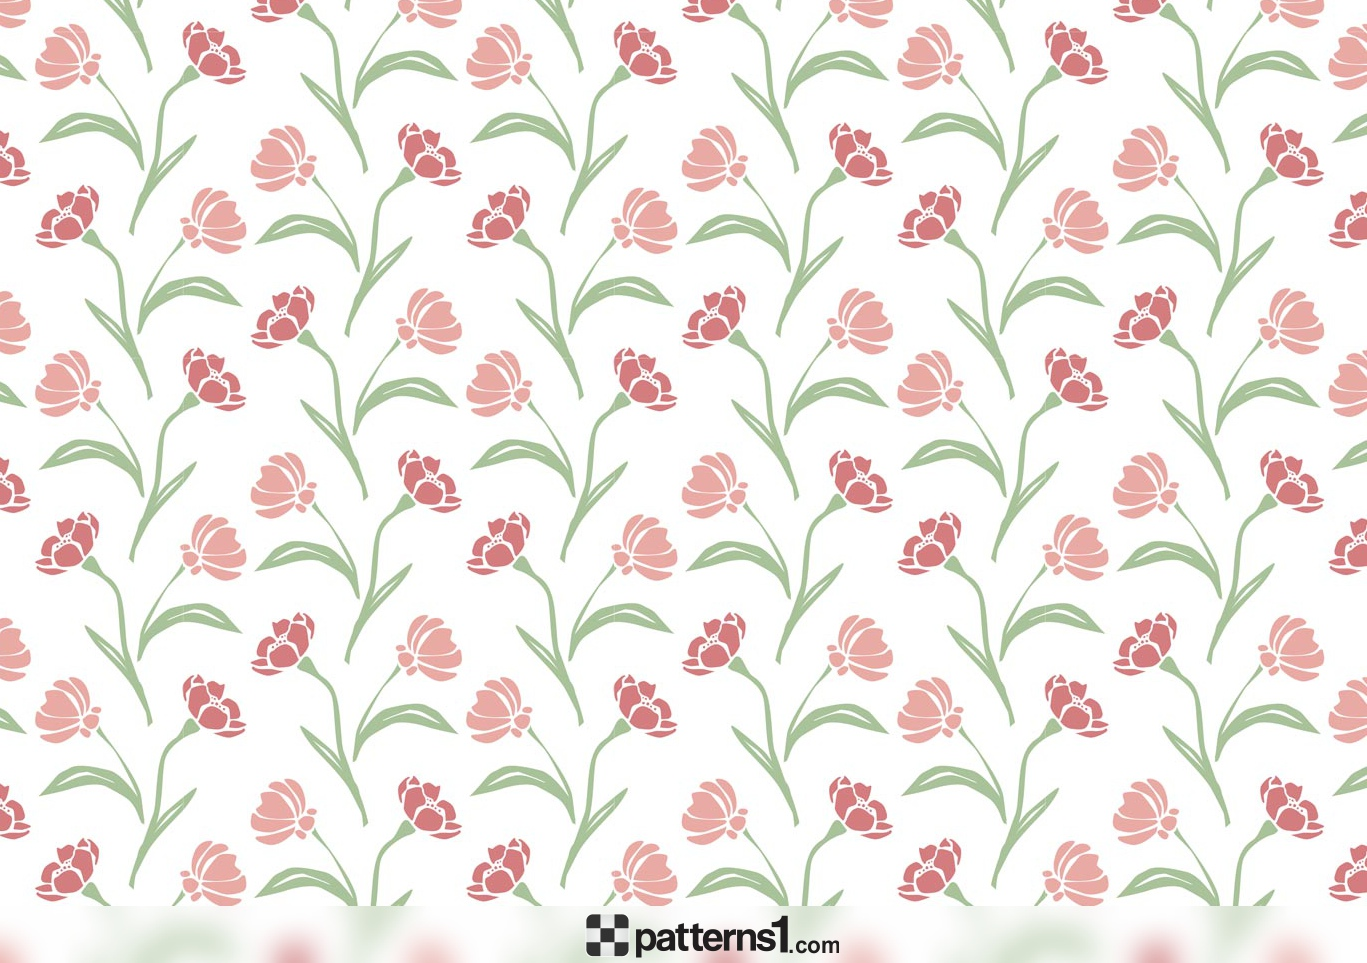 Flower background clipart - Clipground